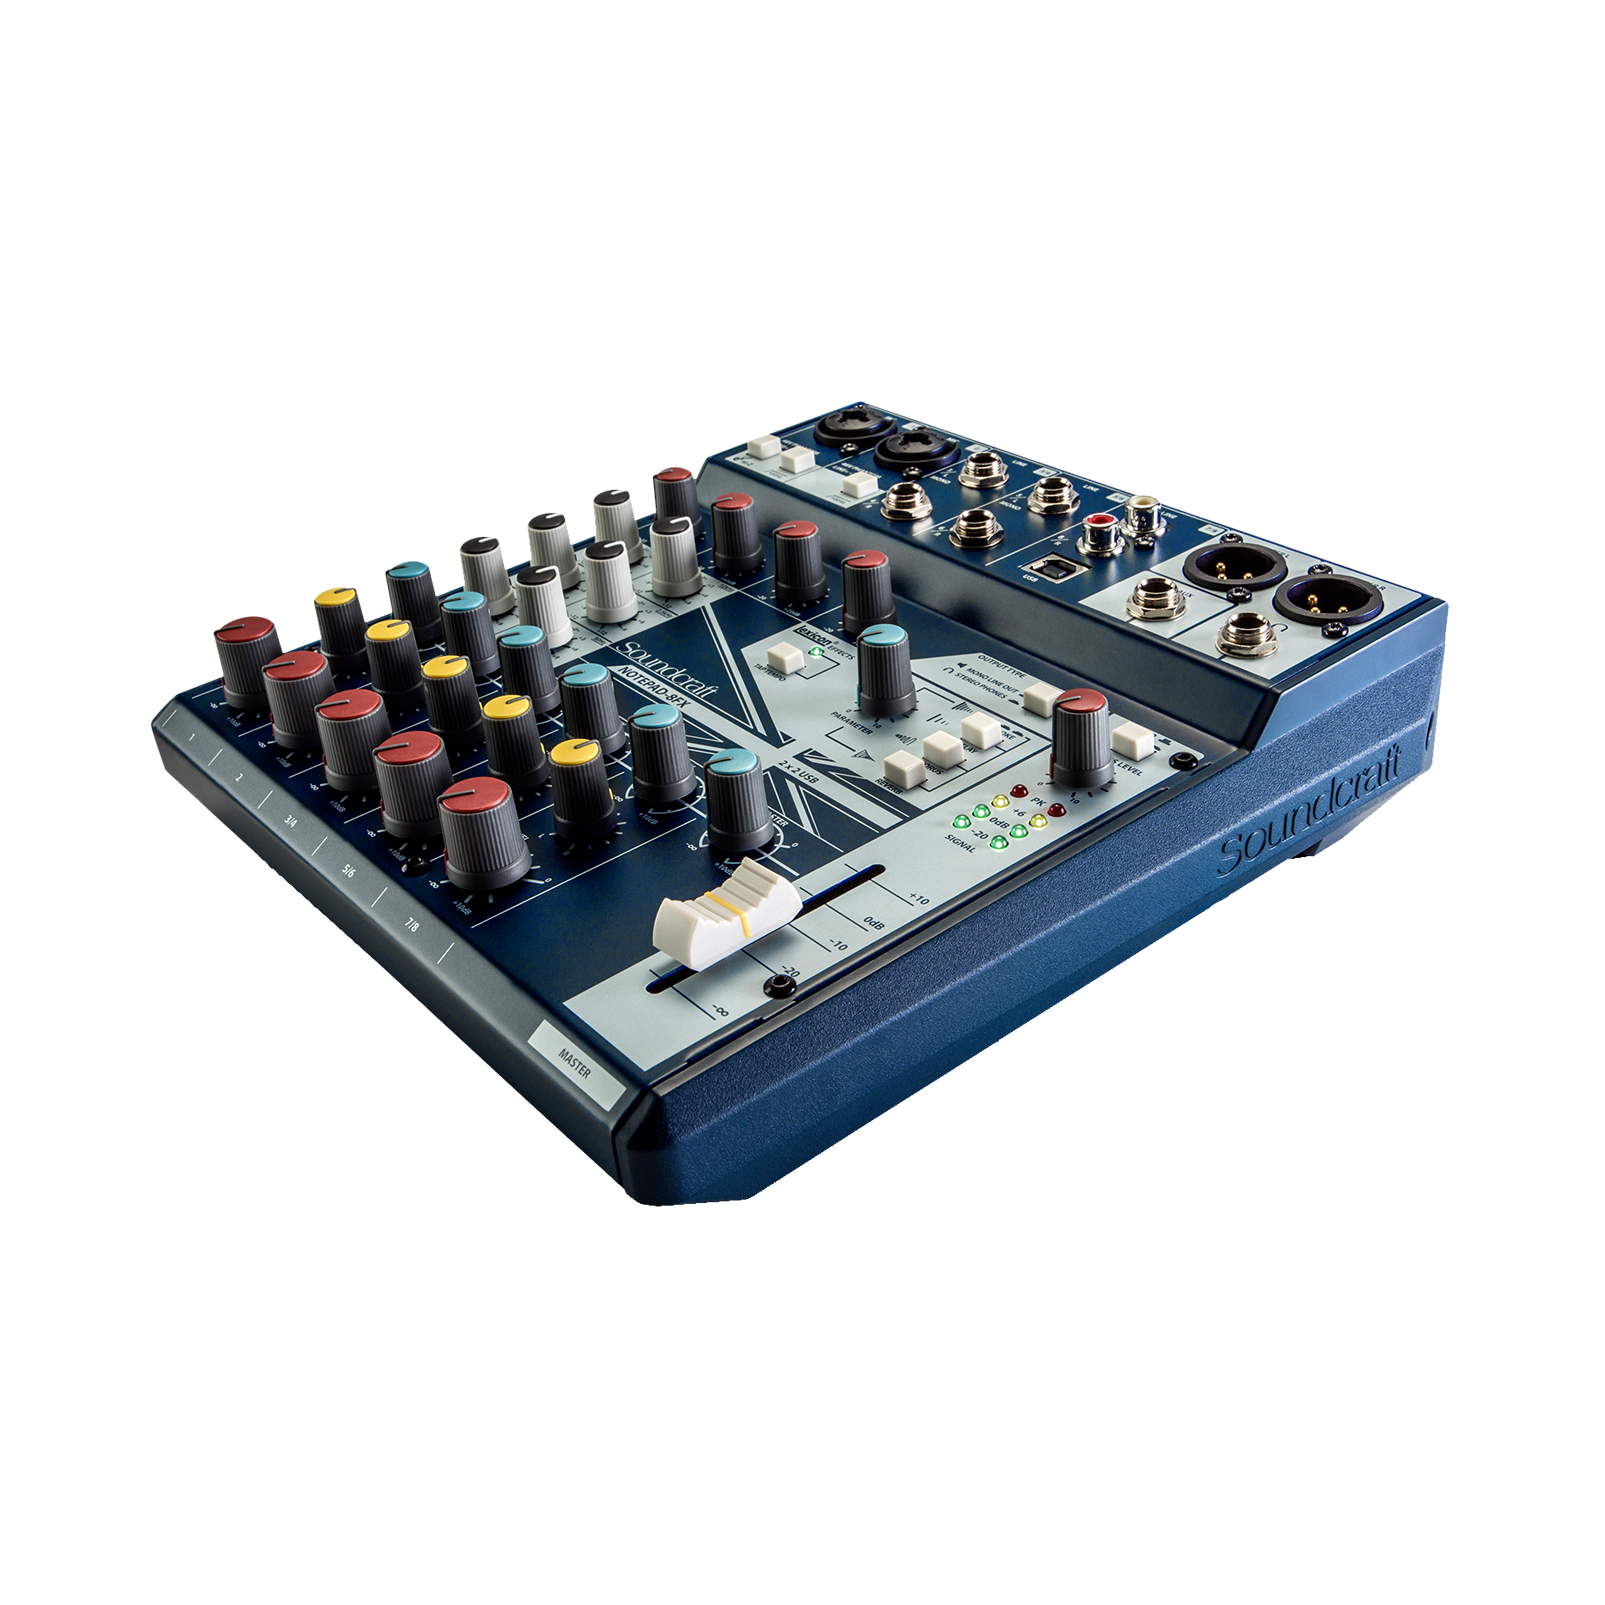 Notepad-8FX (B-Stock) - Dark Blue - Small-format analog mixing console with USB I/O and Lexicon effects - Detailshot 1